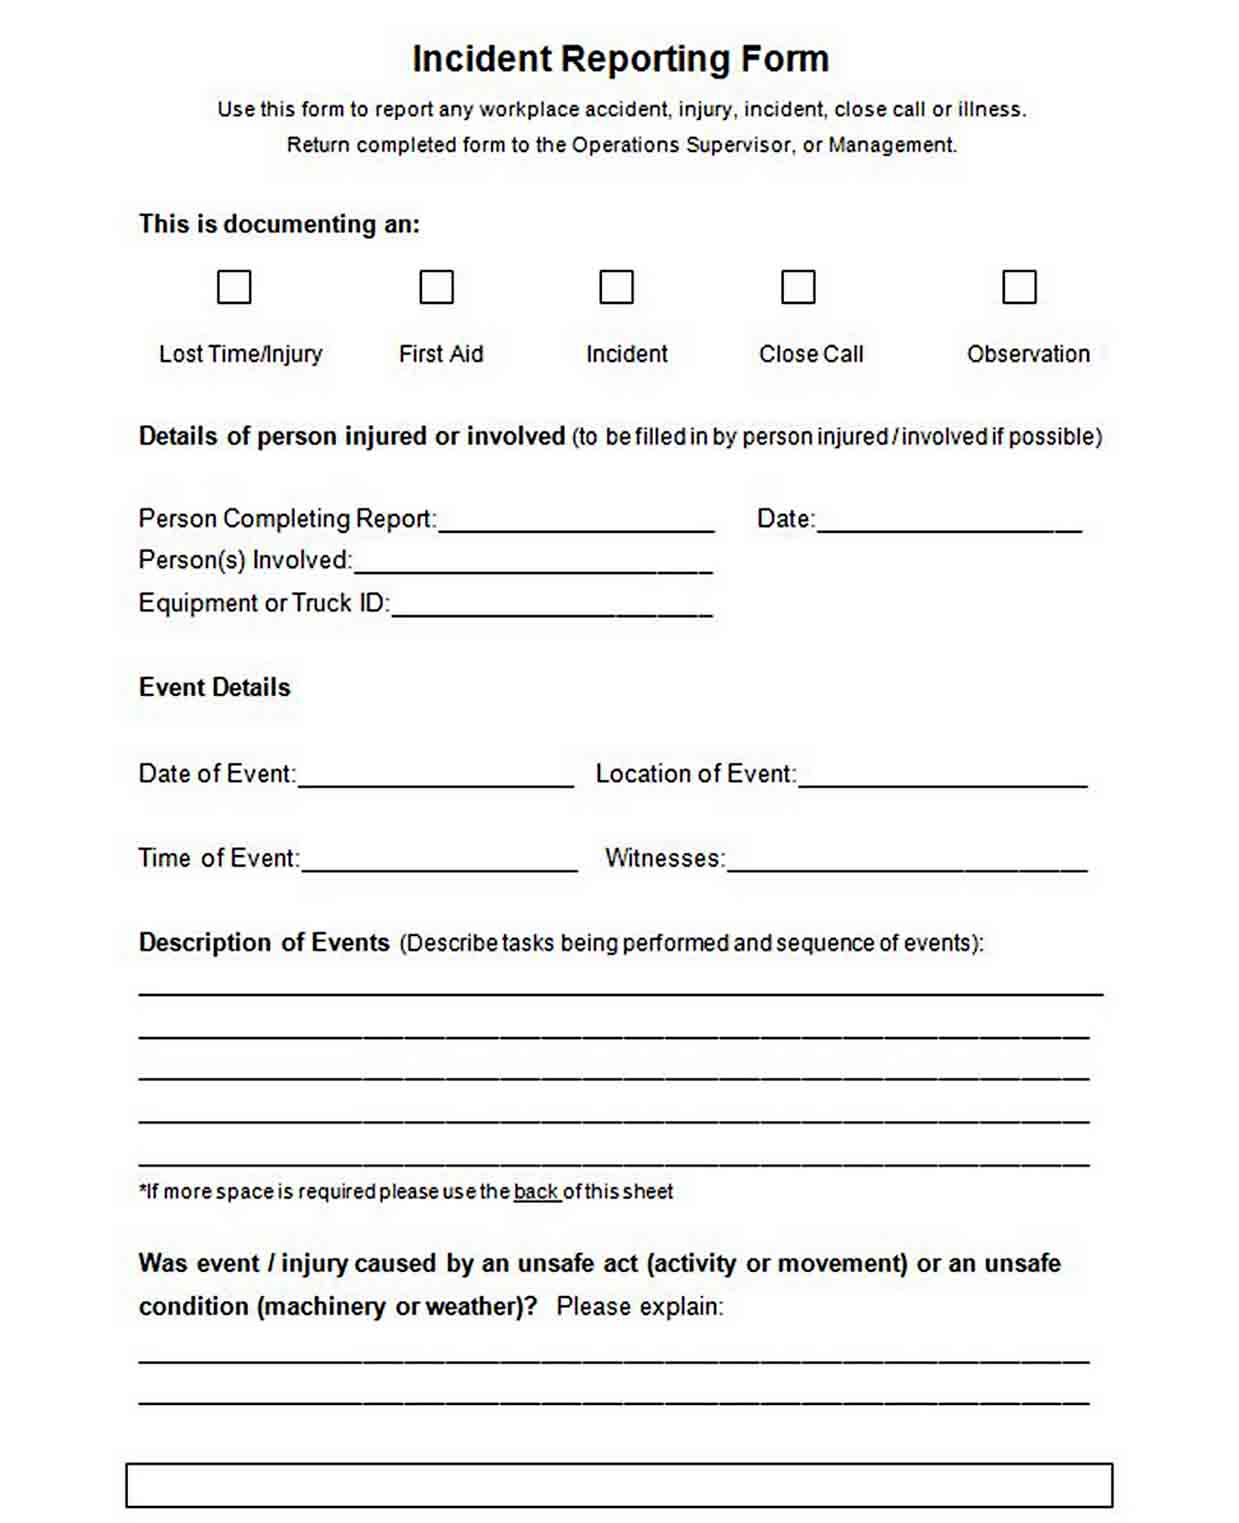 Blank Employee Incident Reporting Form sample